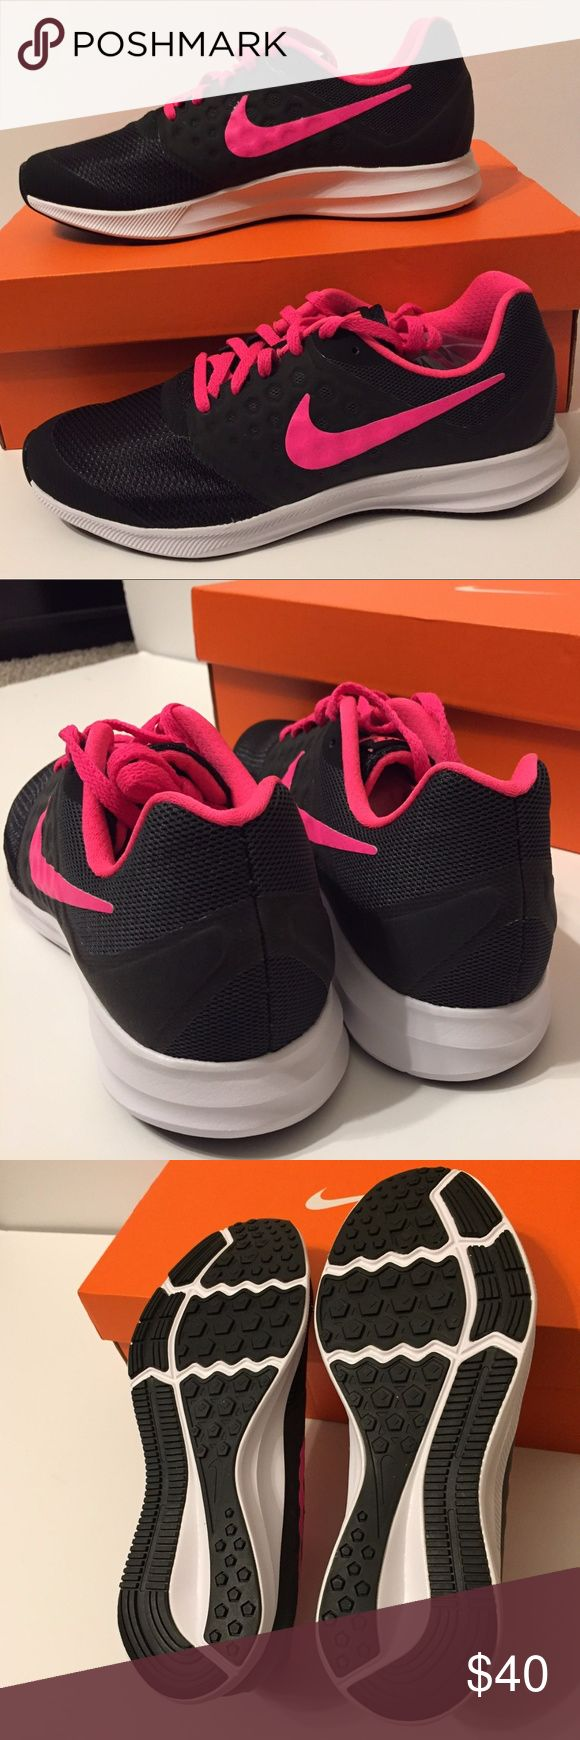 Nike Girl's Running Shoes Size 7 Black, Hot Pink Brand new in box!  Comes with an extra pair of black shoelaces.  Comes from a smoke-free and pet-free home.  A durable lace-up running shoe with breathable mesh upper. Designed for performance. Nike Shoes Sneakers